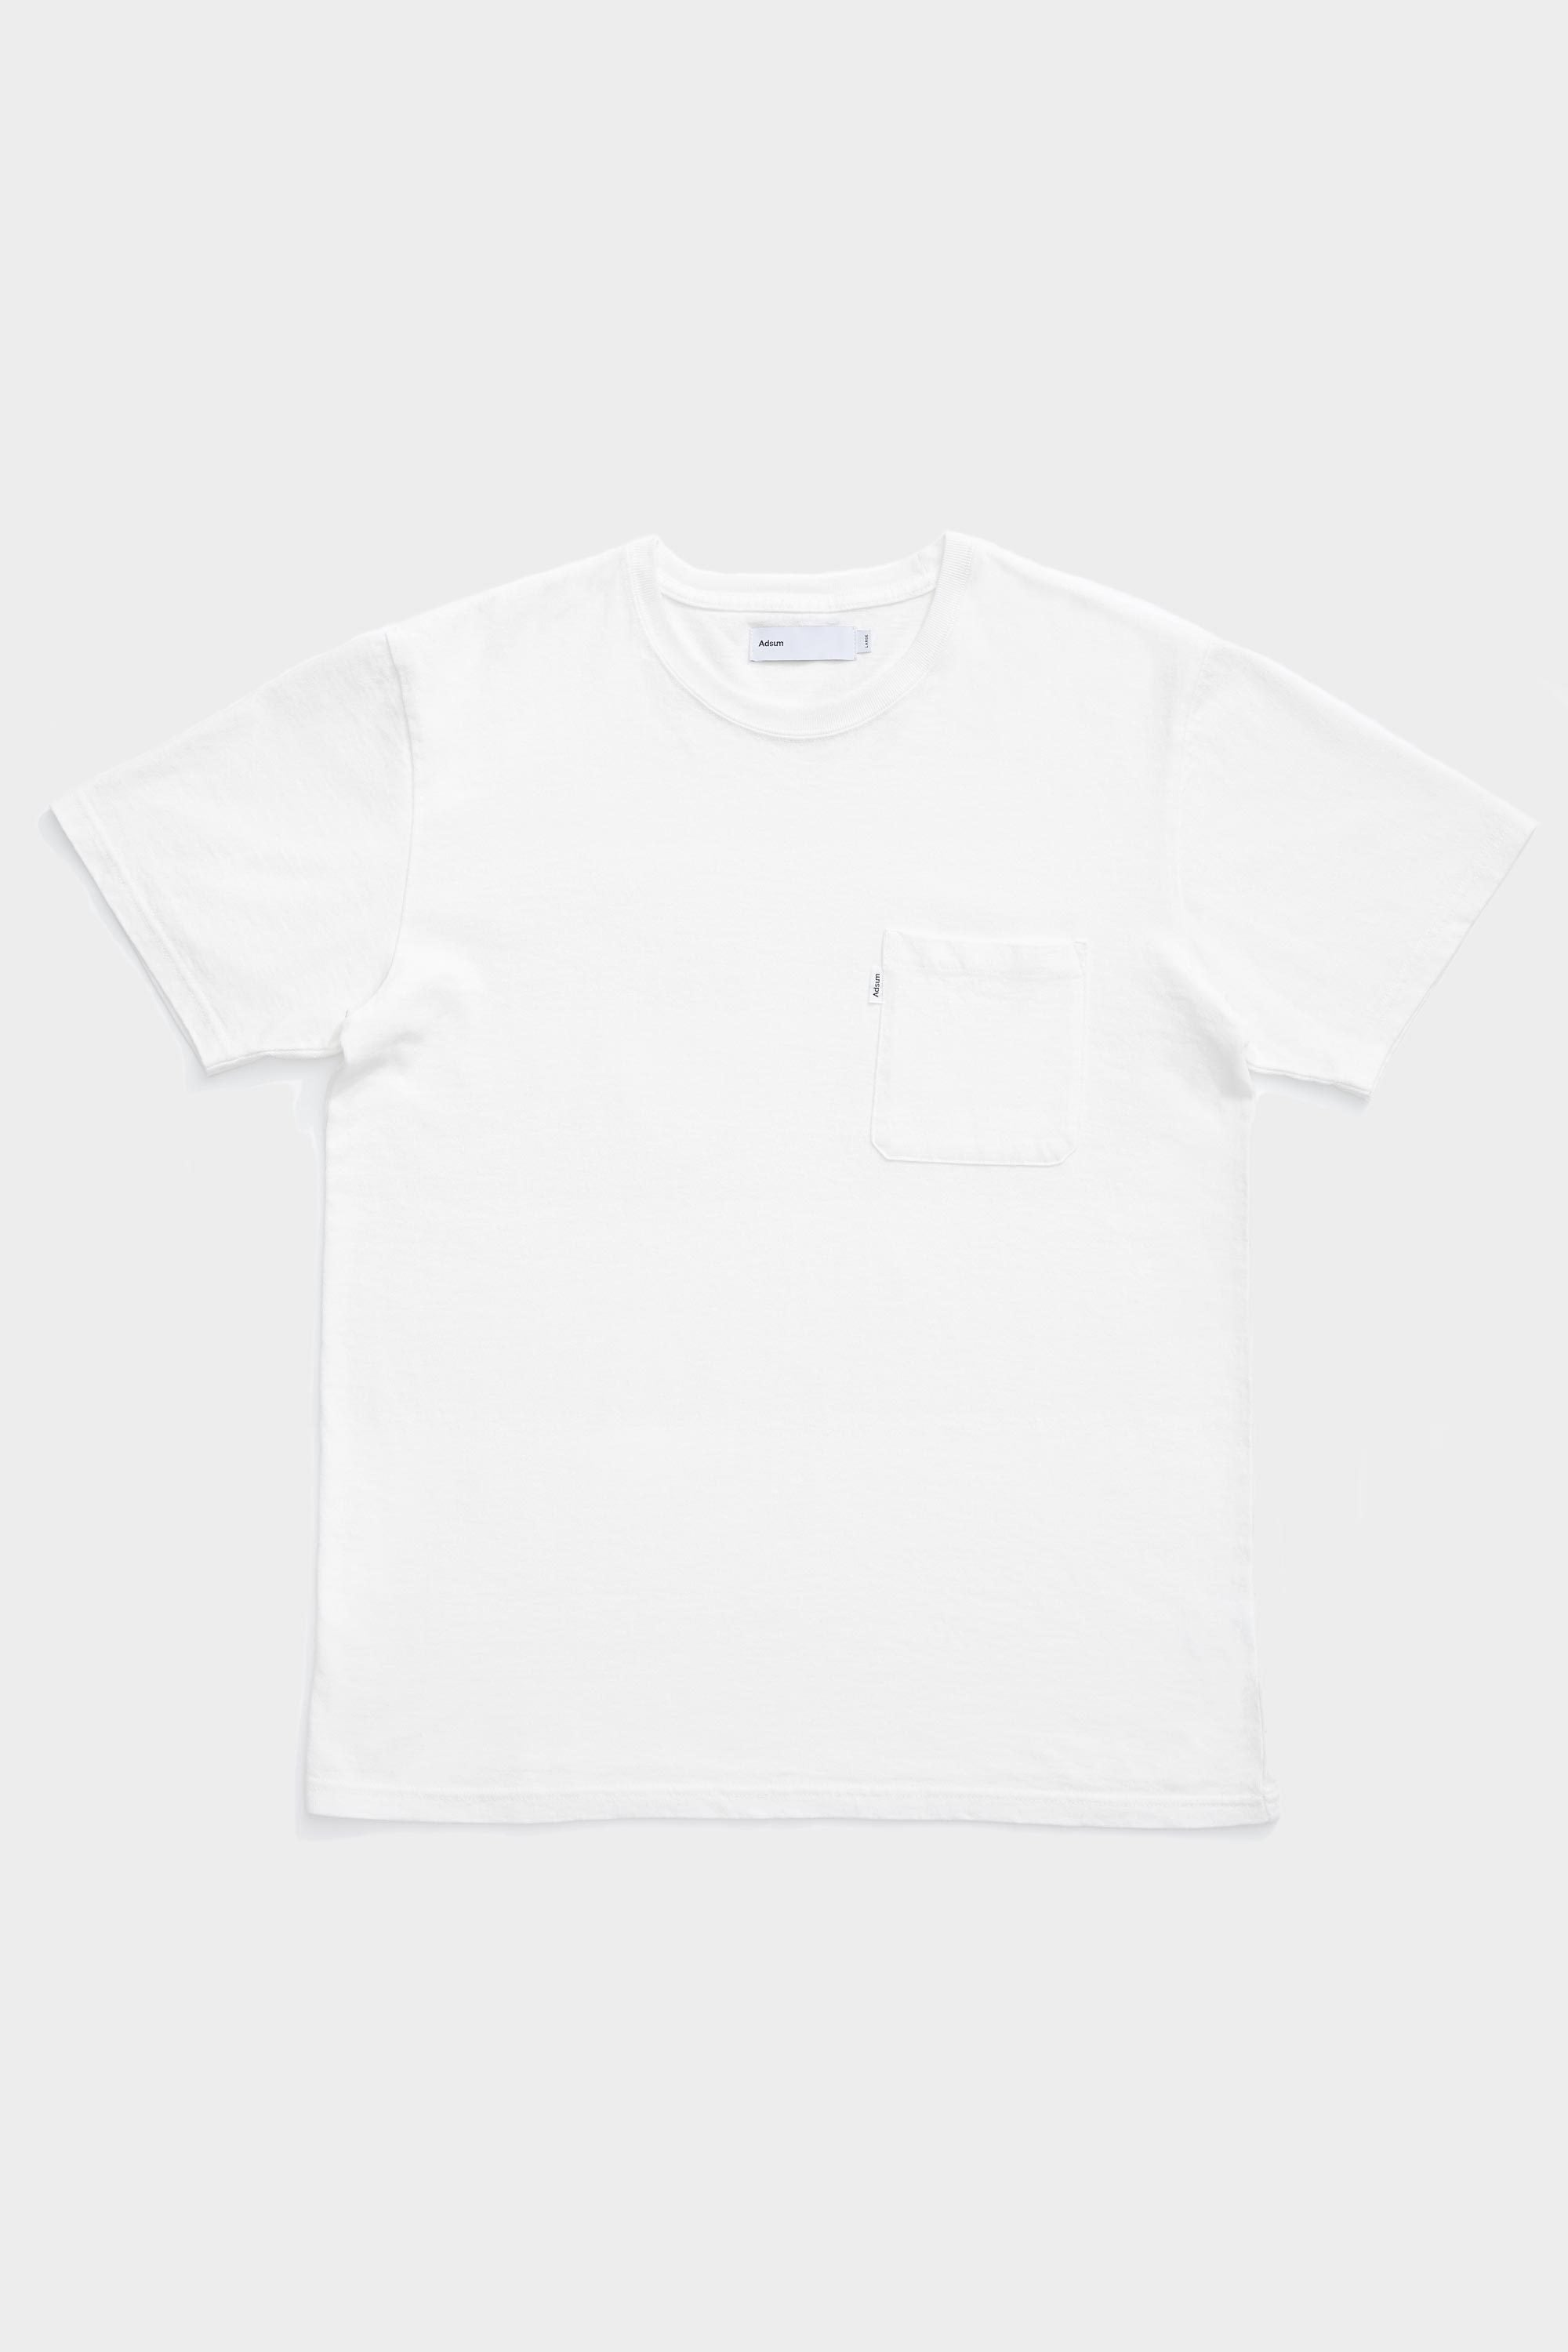 Bank Pant - Pocket Tee - White